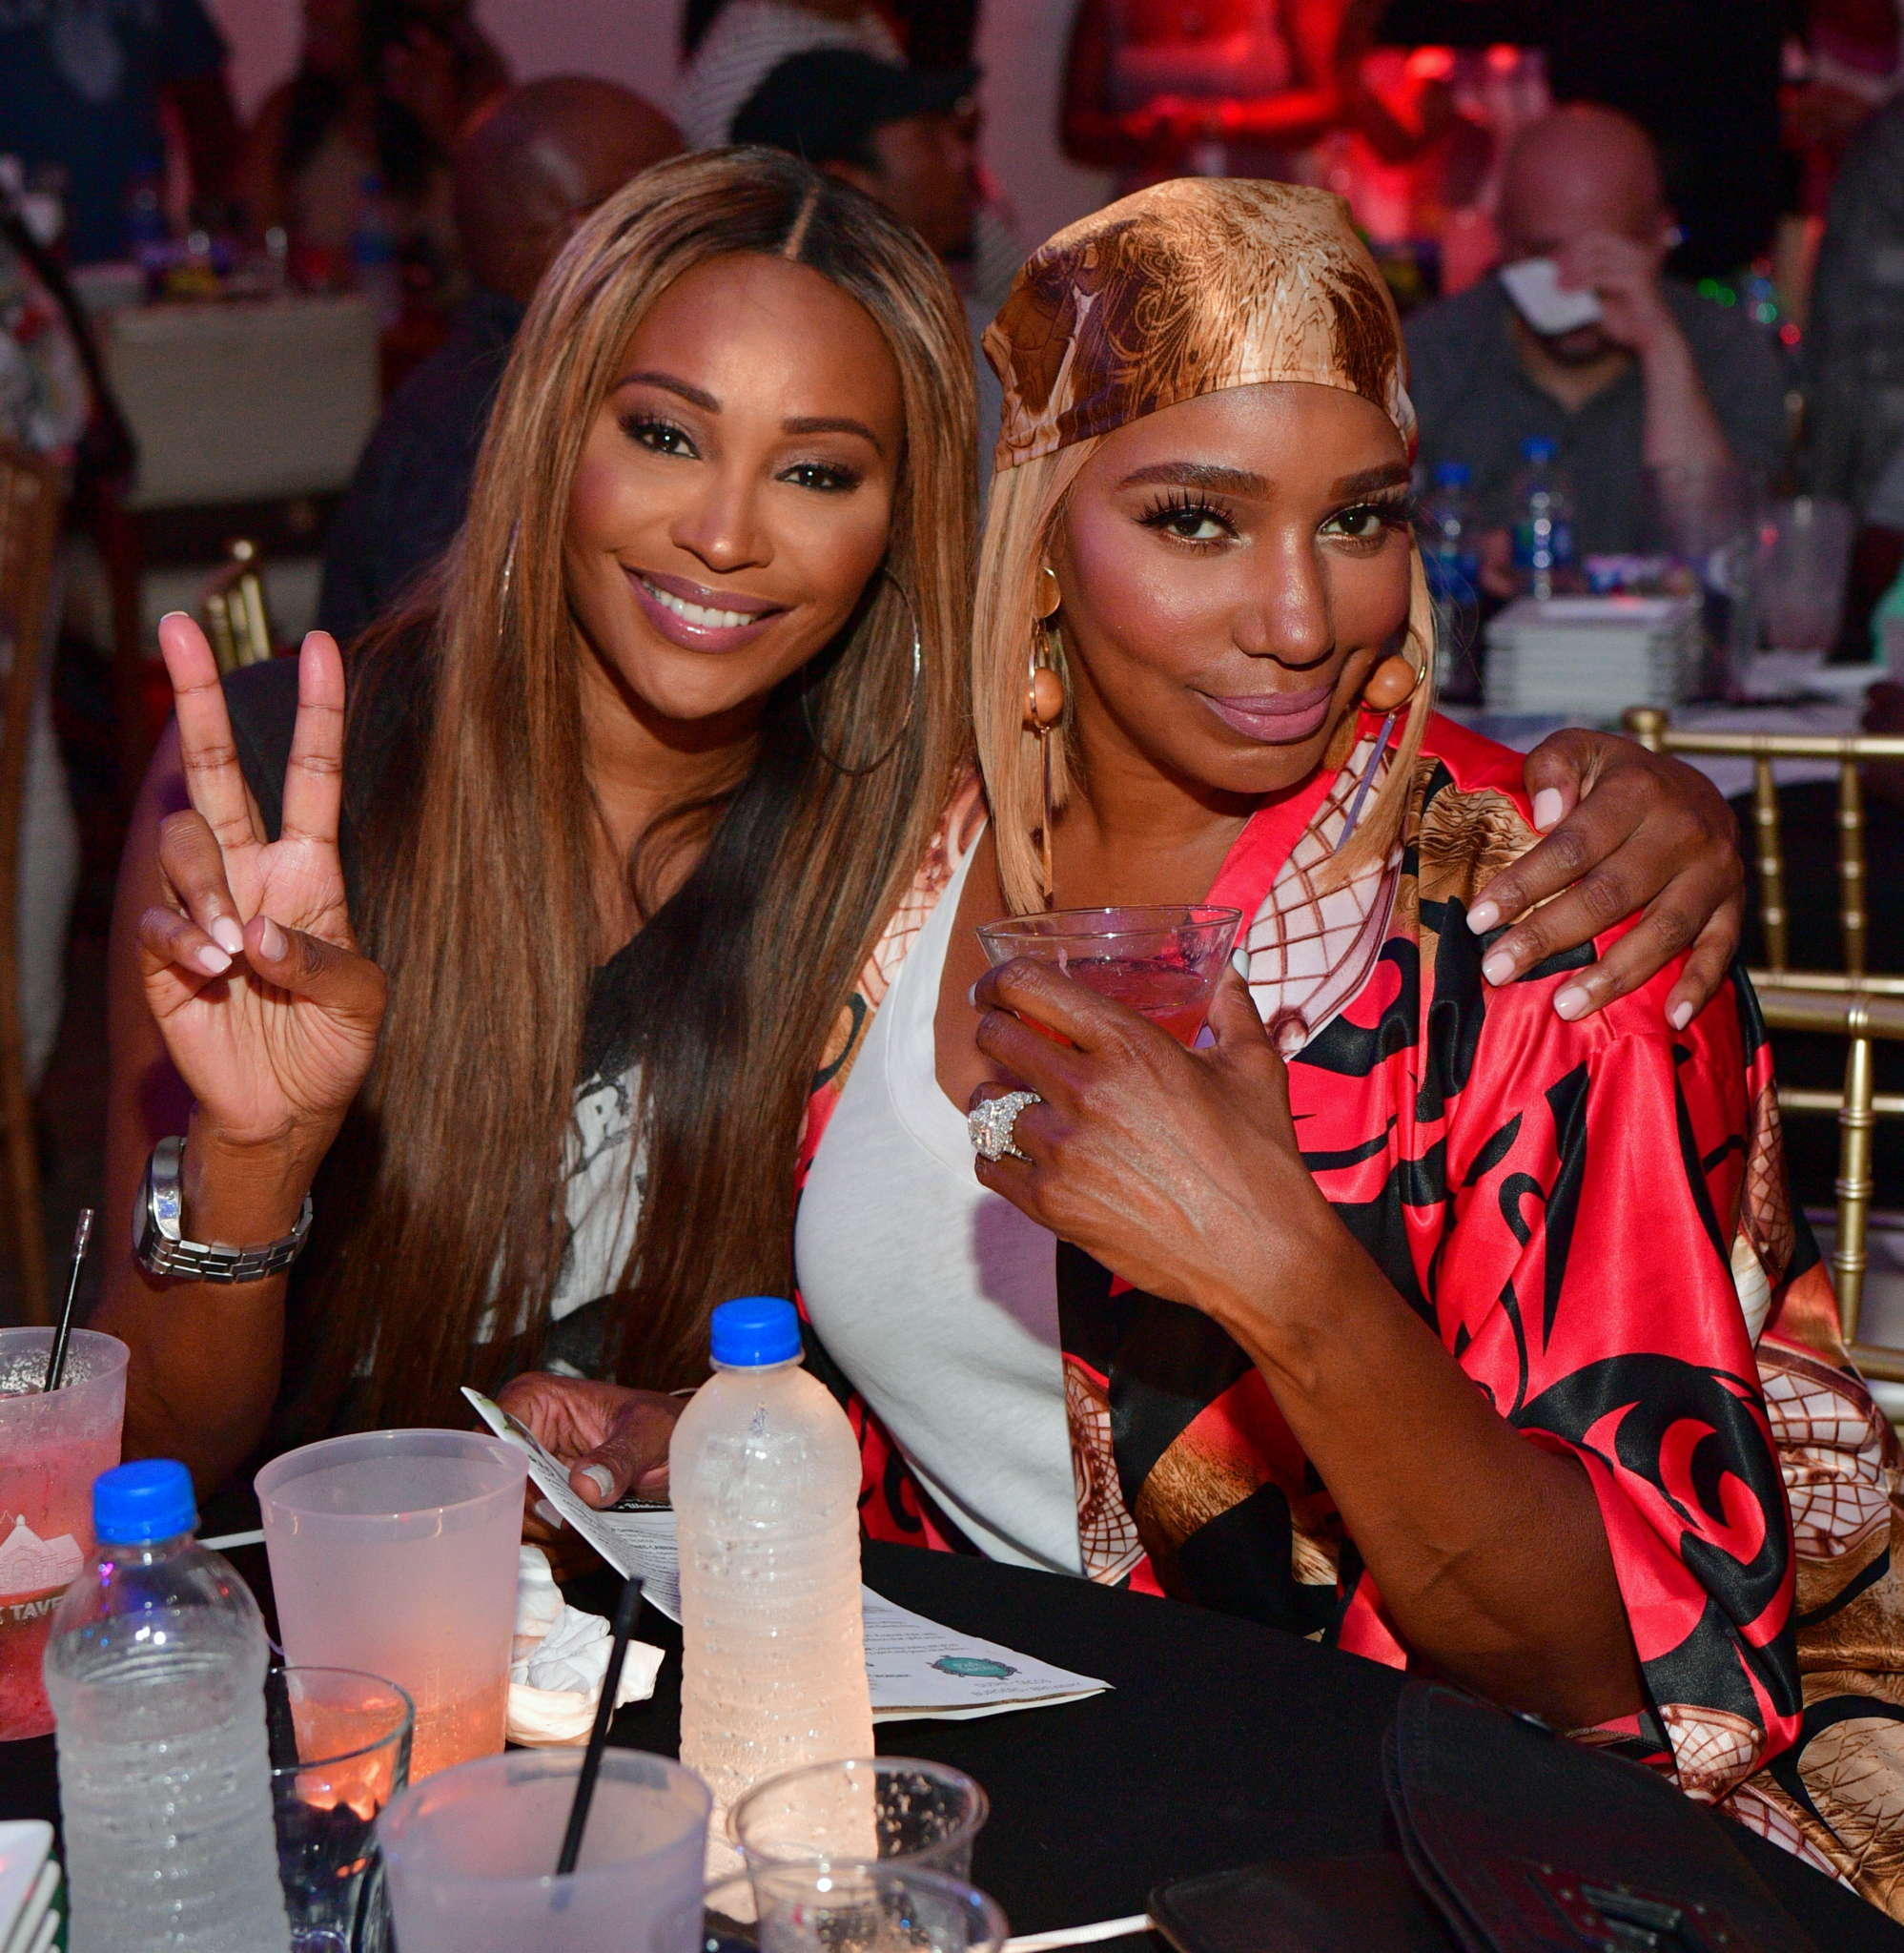 Cynthia Bailey Tells Fans To Continue Fighting For The Phenomenally Black Community Until There's Full Accountability